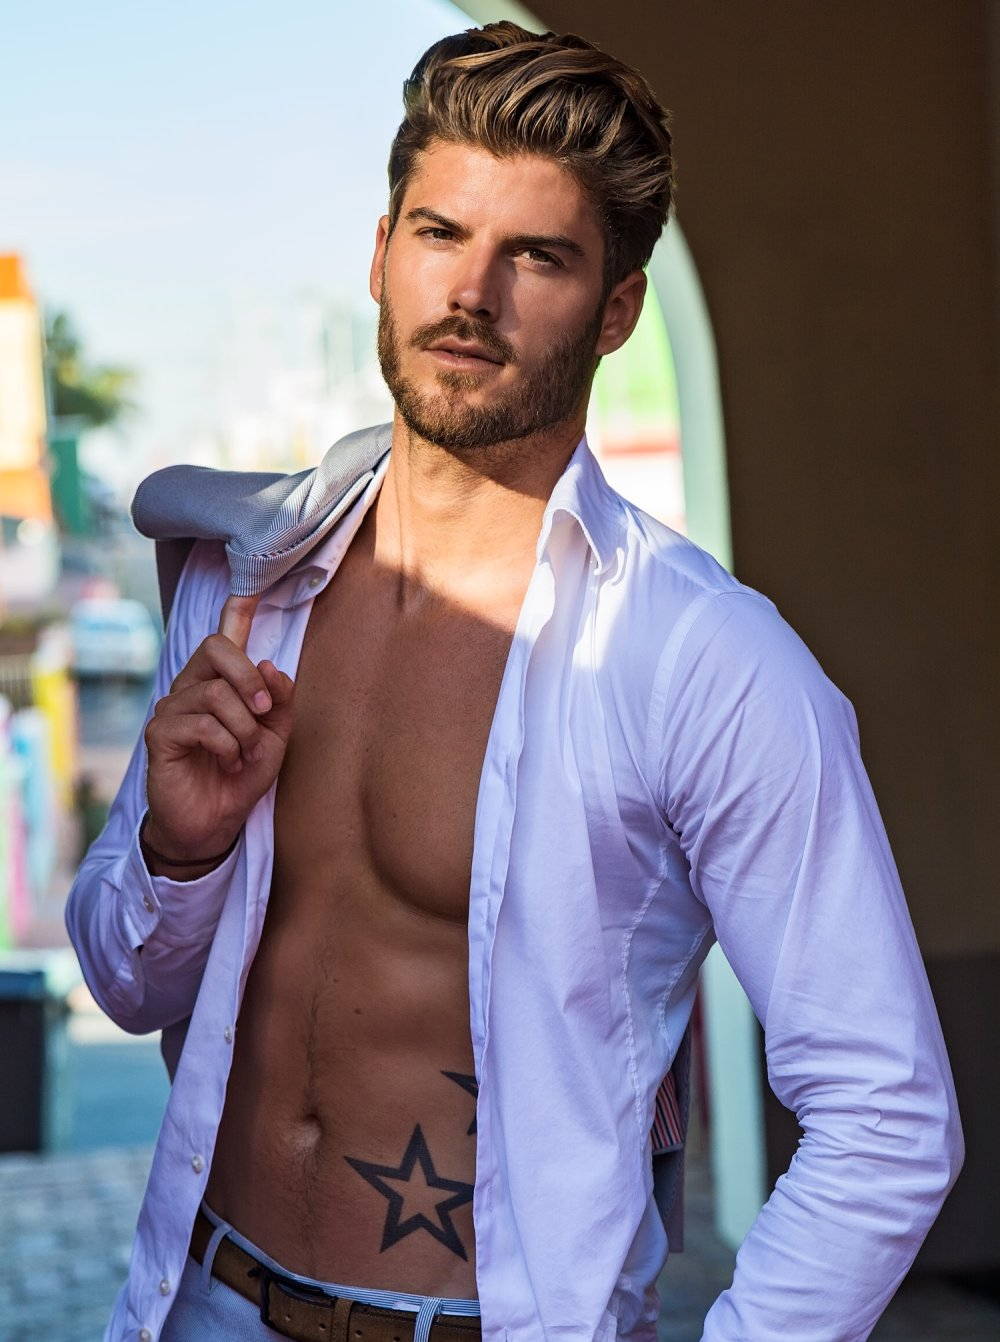 Kevin Lutolf by Tanya Tiffin 2